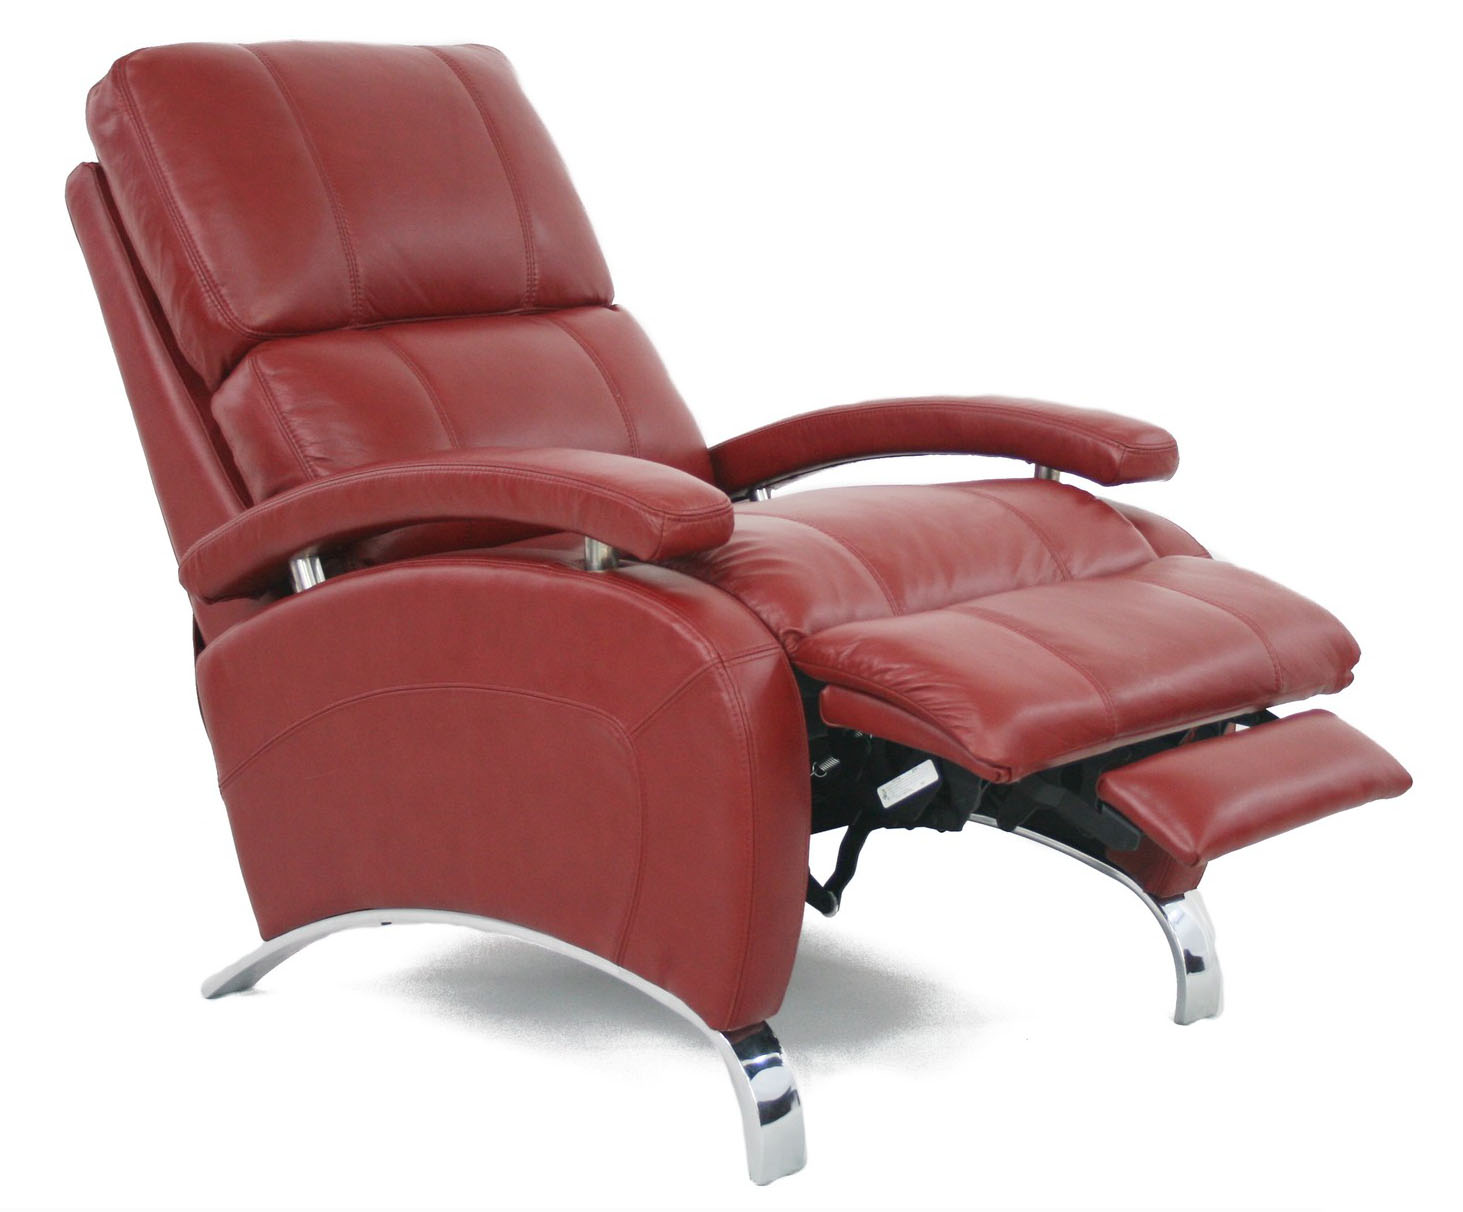 Reclining Lounge Chair Barcalounger Oracle Ii Recliner Chair Leather Recliner